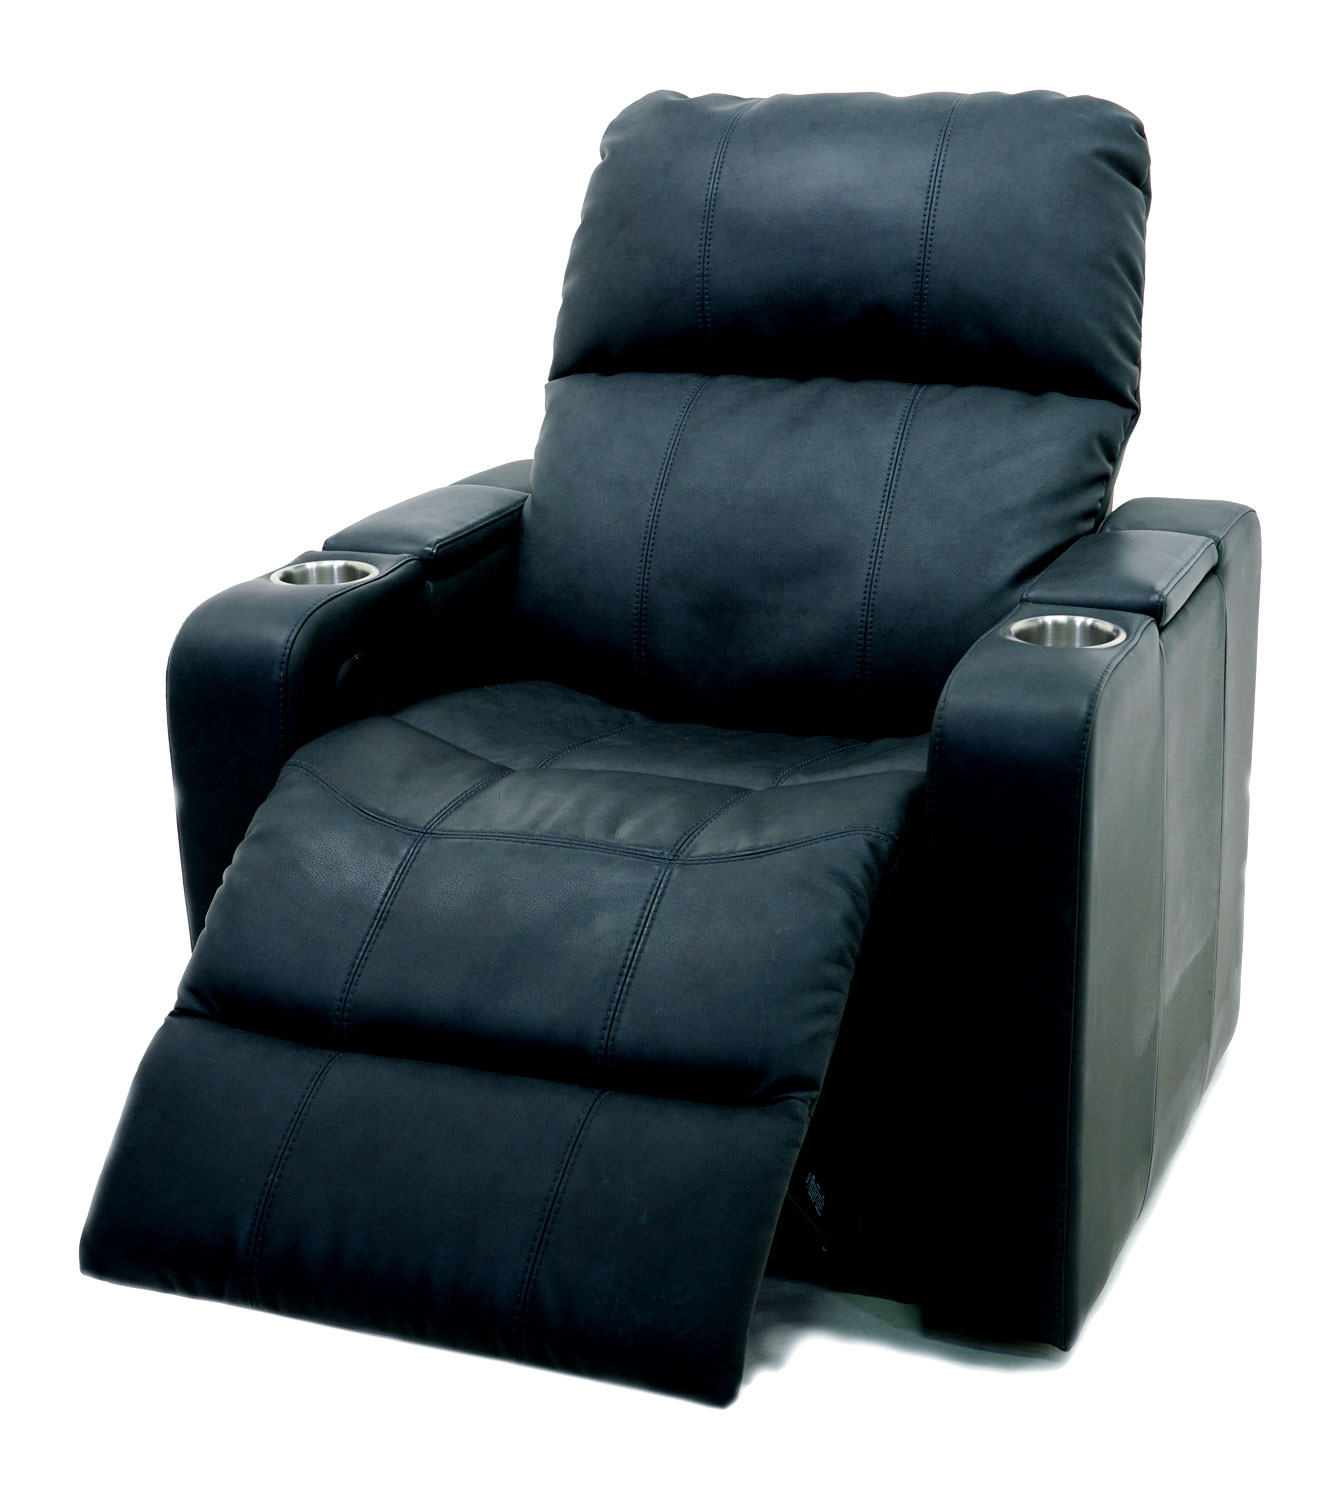 Garage Seat Lens Home Theater Seating Recliner Sofas Abt